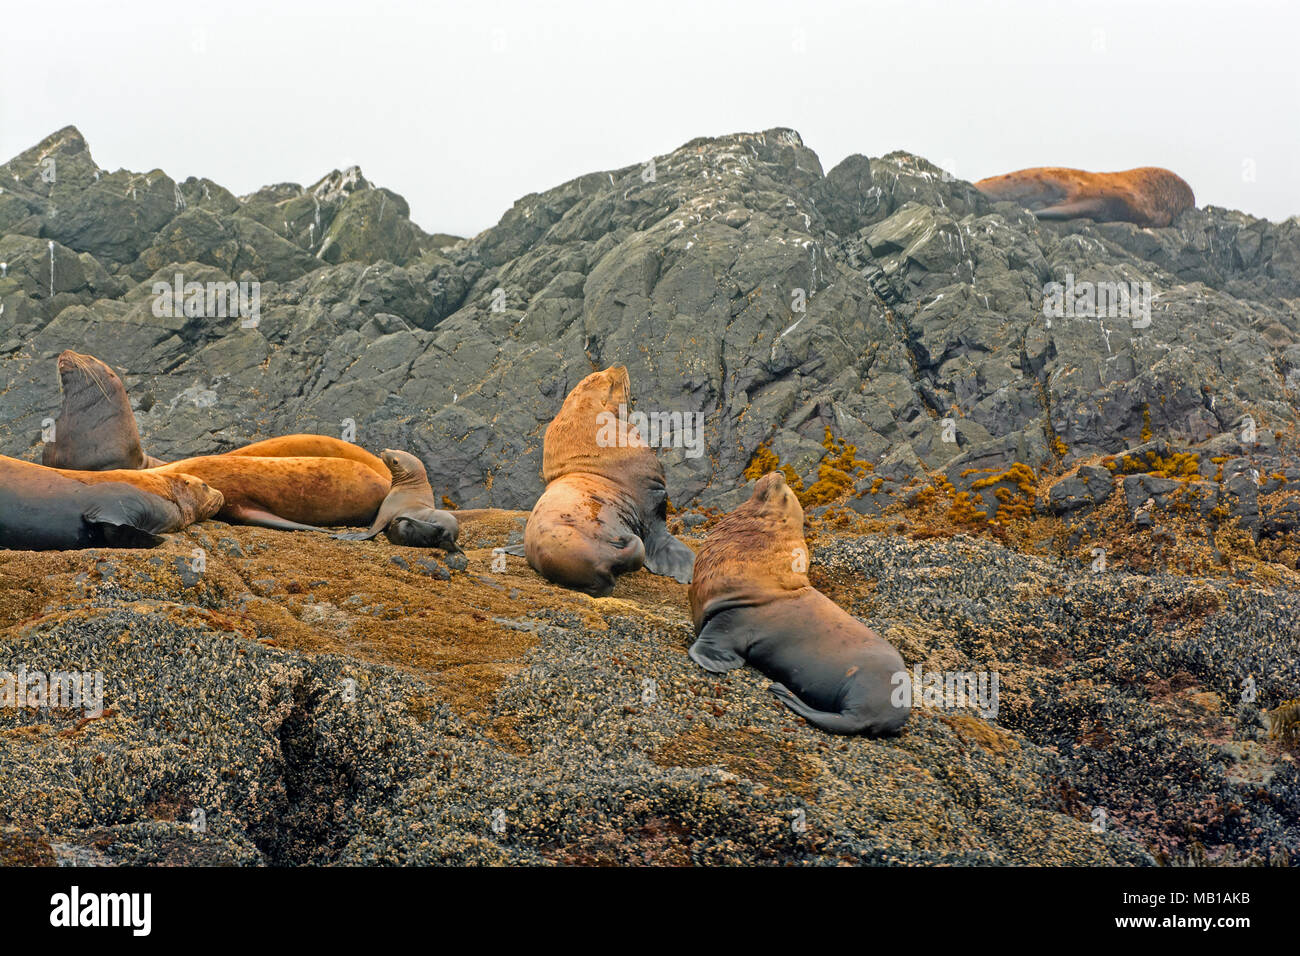 Stellar Sea Lions off the coast of Vancouver Island near Tofino - Stock Image